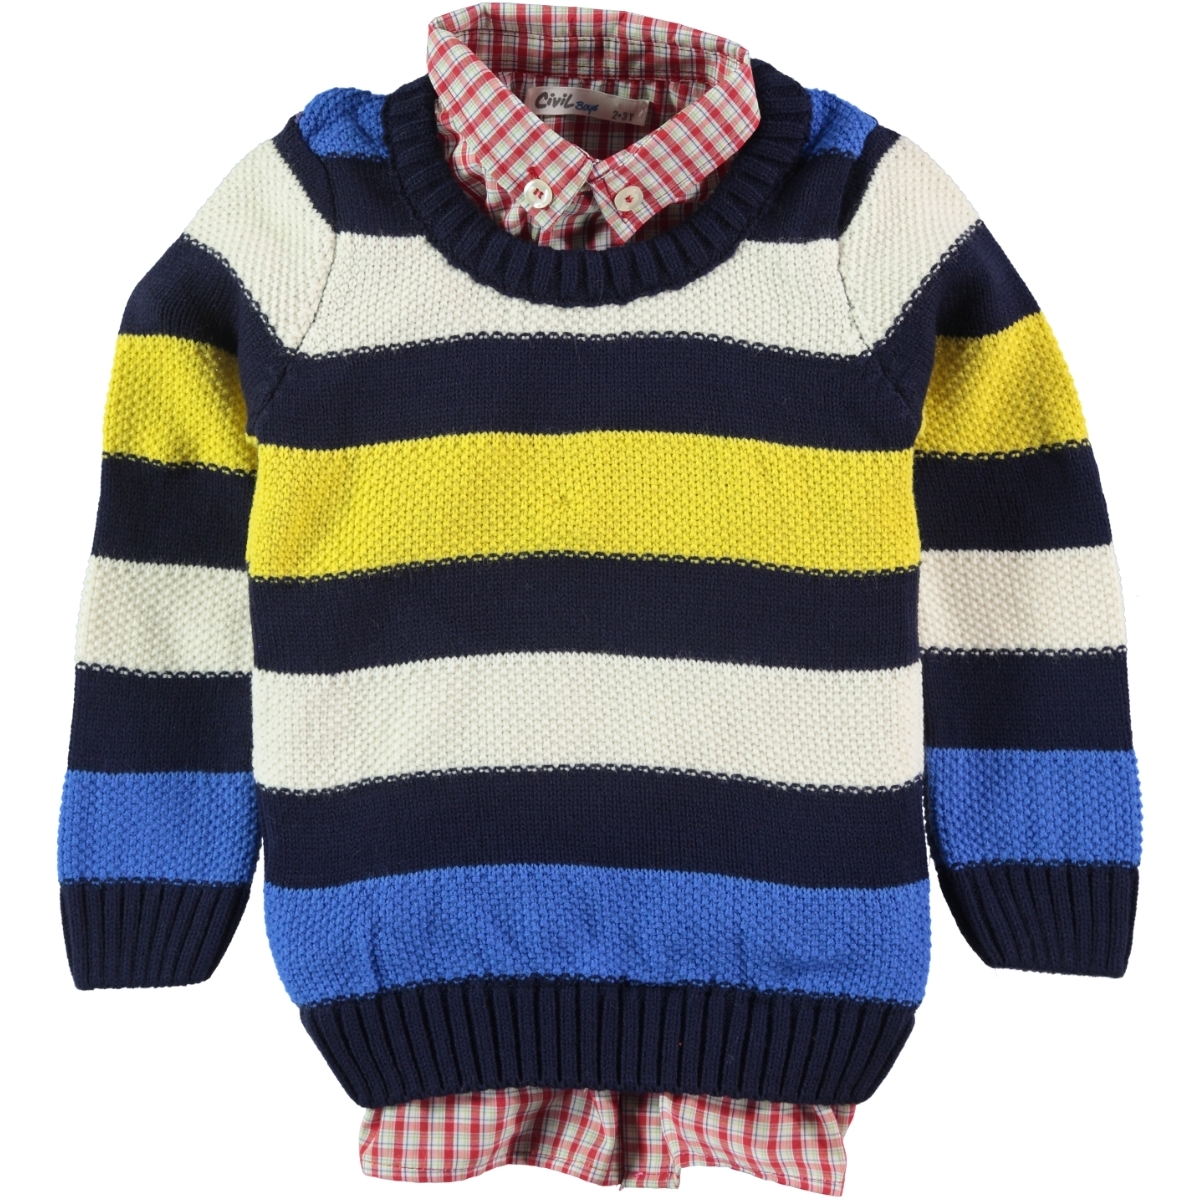 Civil Boys 2-5 Years Navy Blue Boy's Sweater